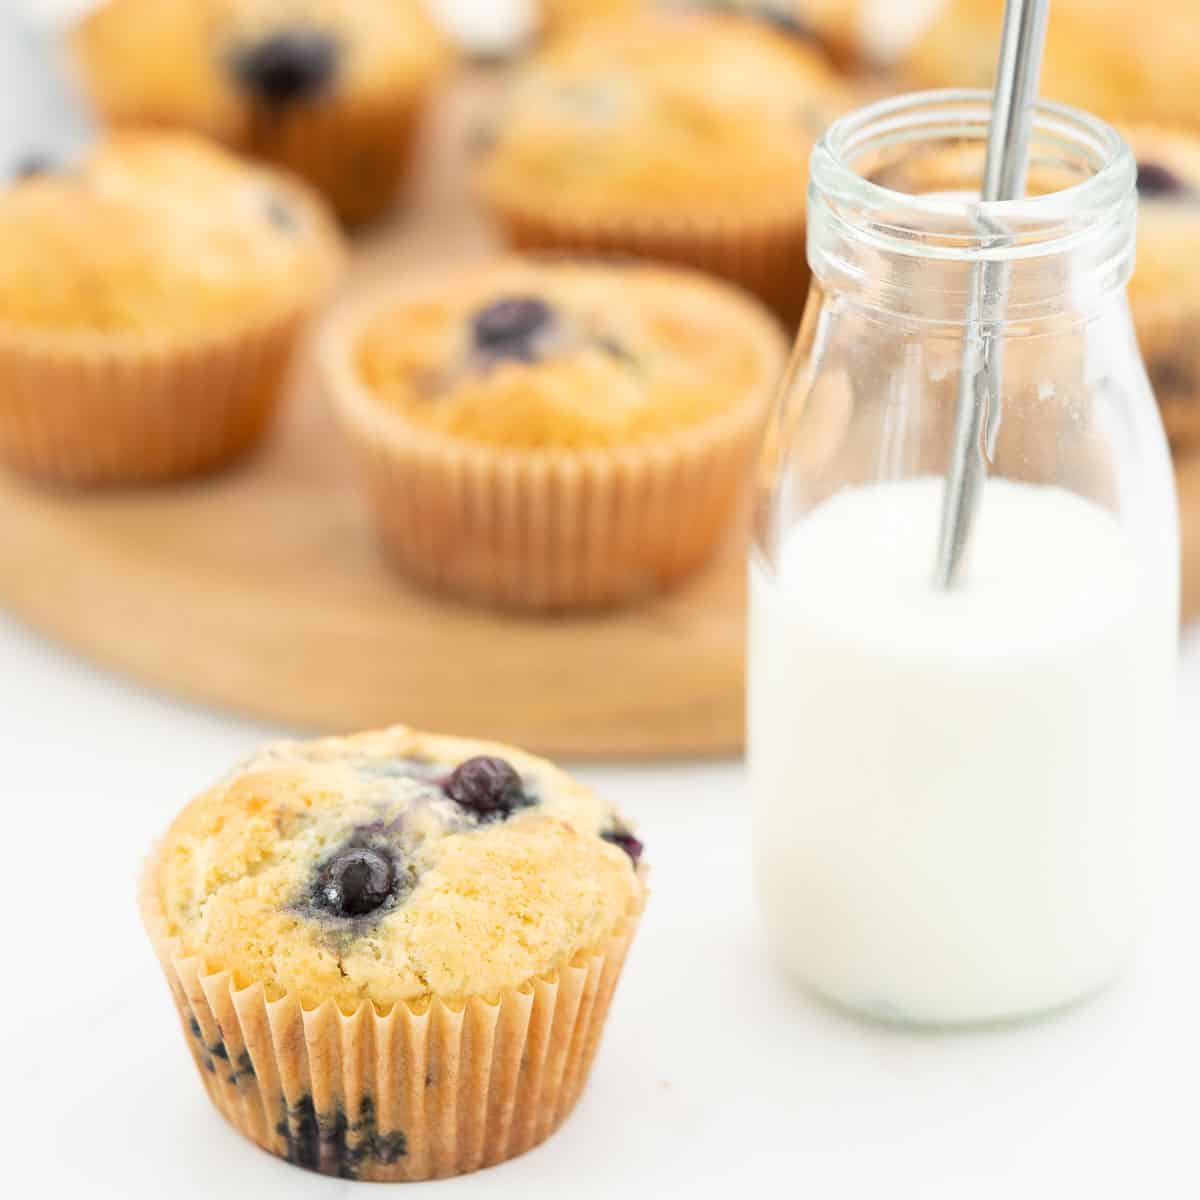 A blueberry muffin sitting next to a glass of milk with a straw.